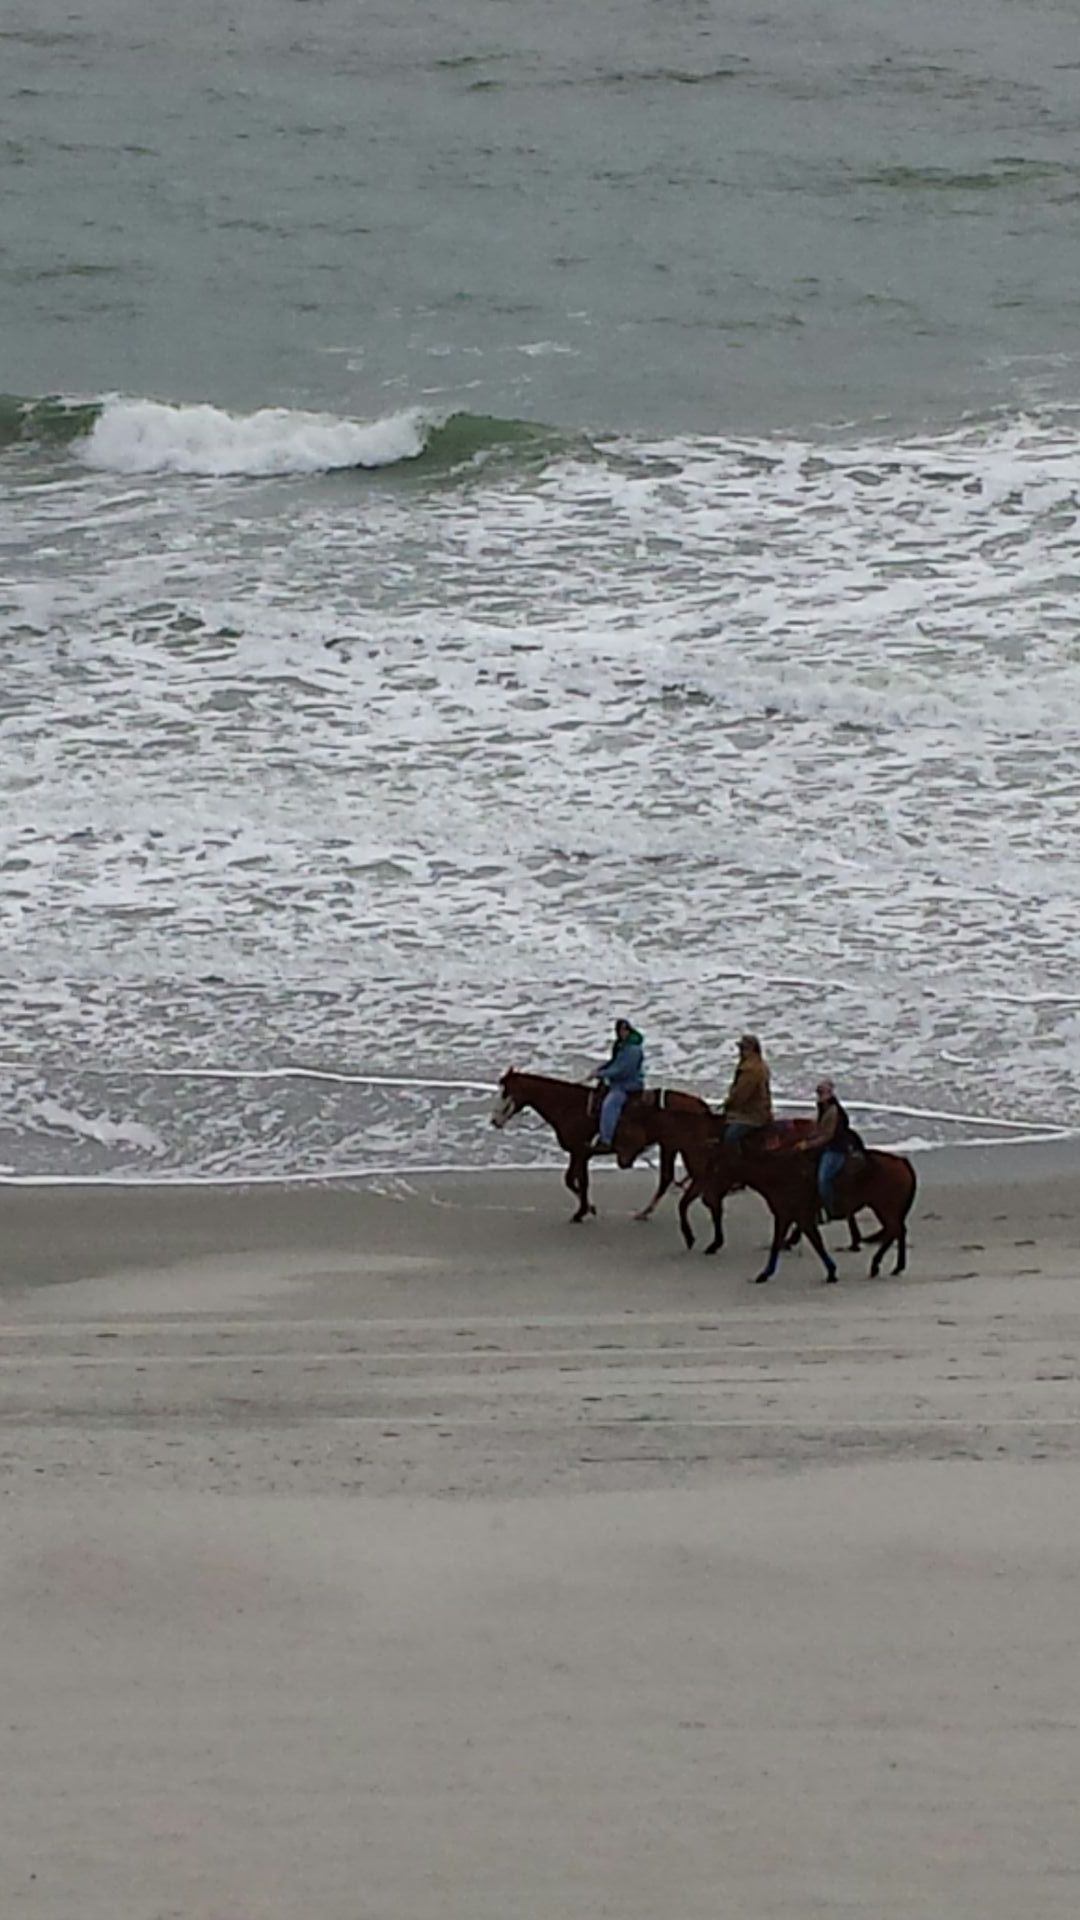 Horse riders at Myrtle Beach